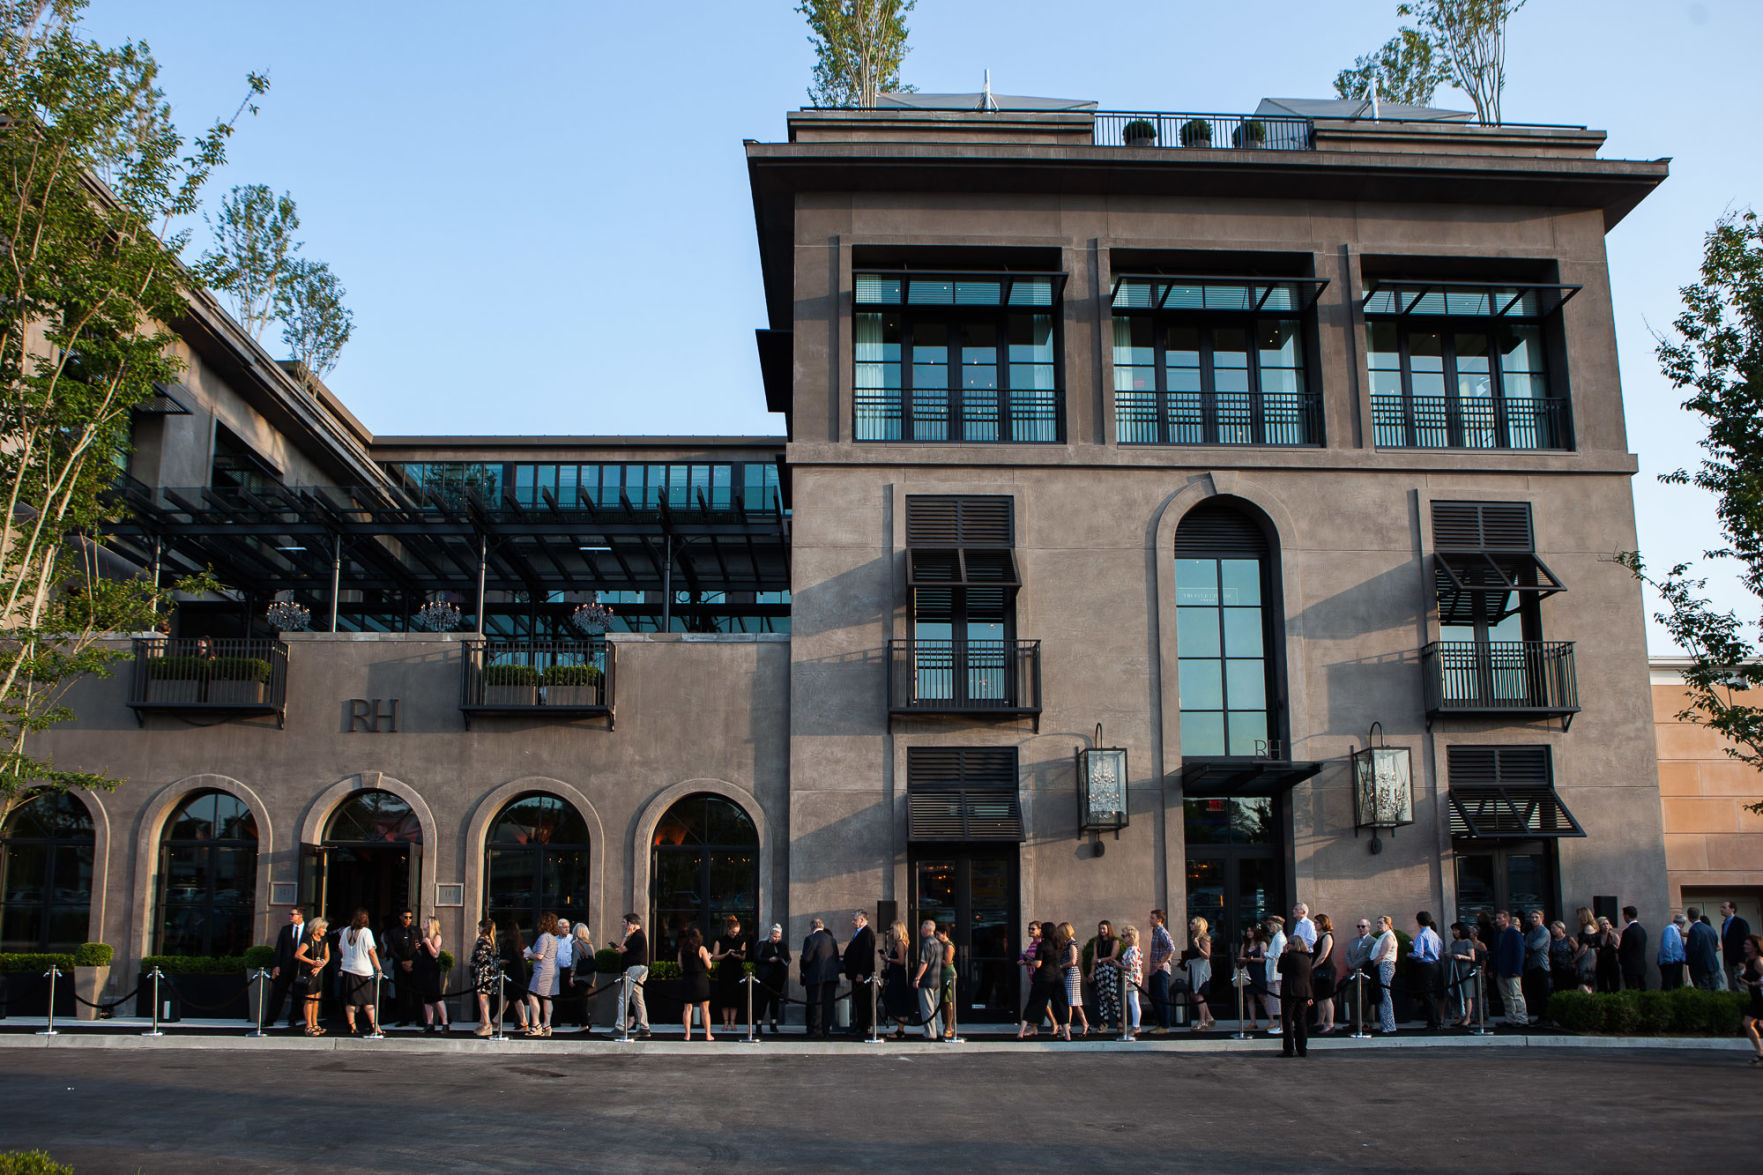 Guests line up outside the recently opened RH Nashville, the Gallery at Green Hills